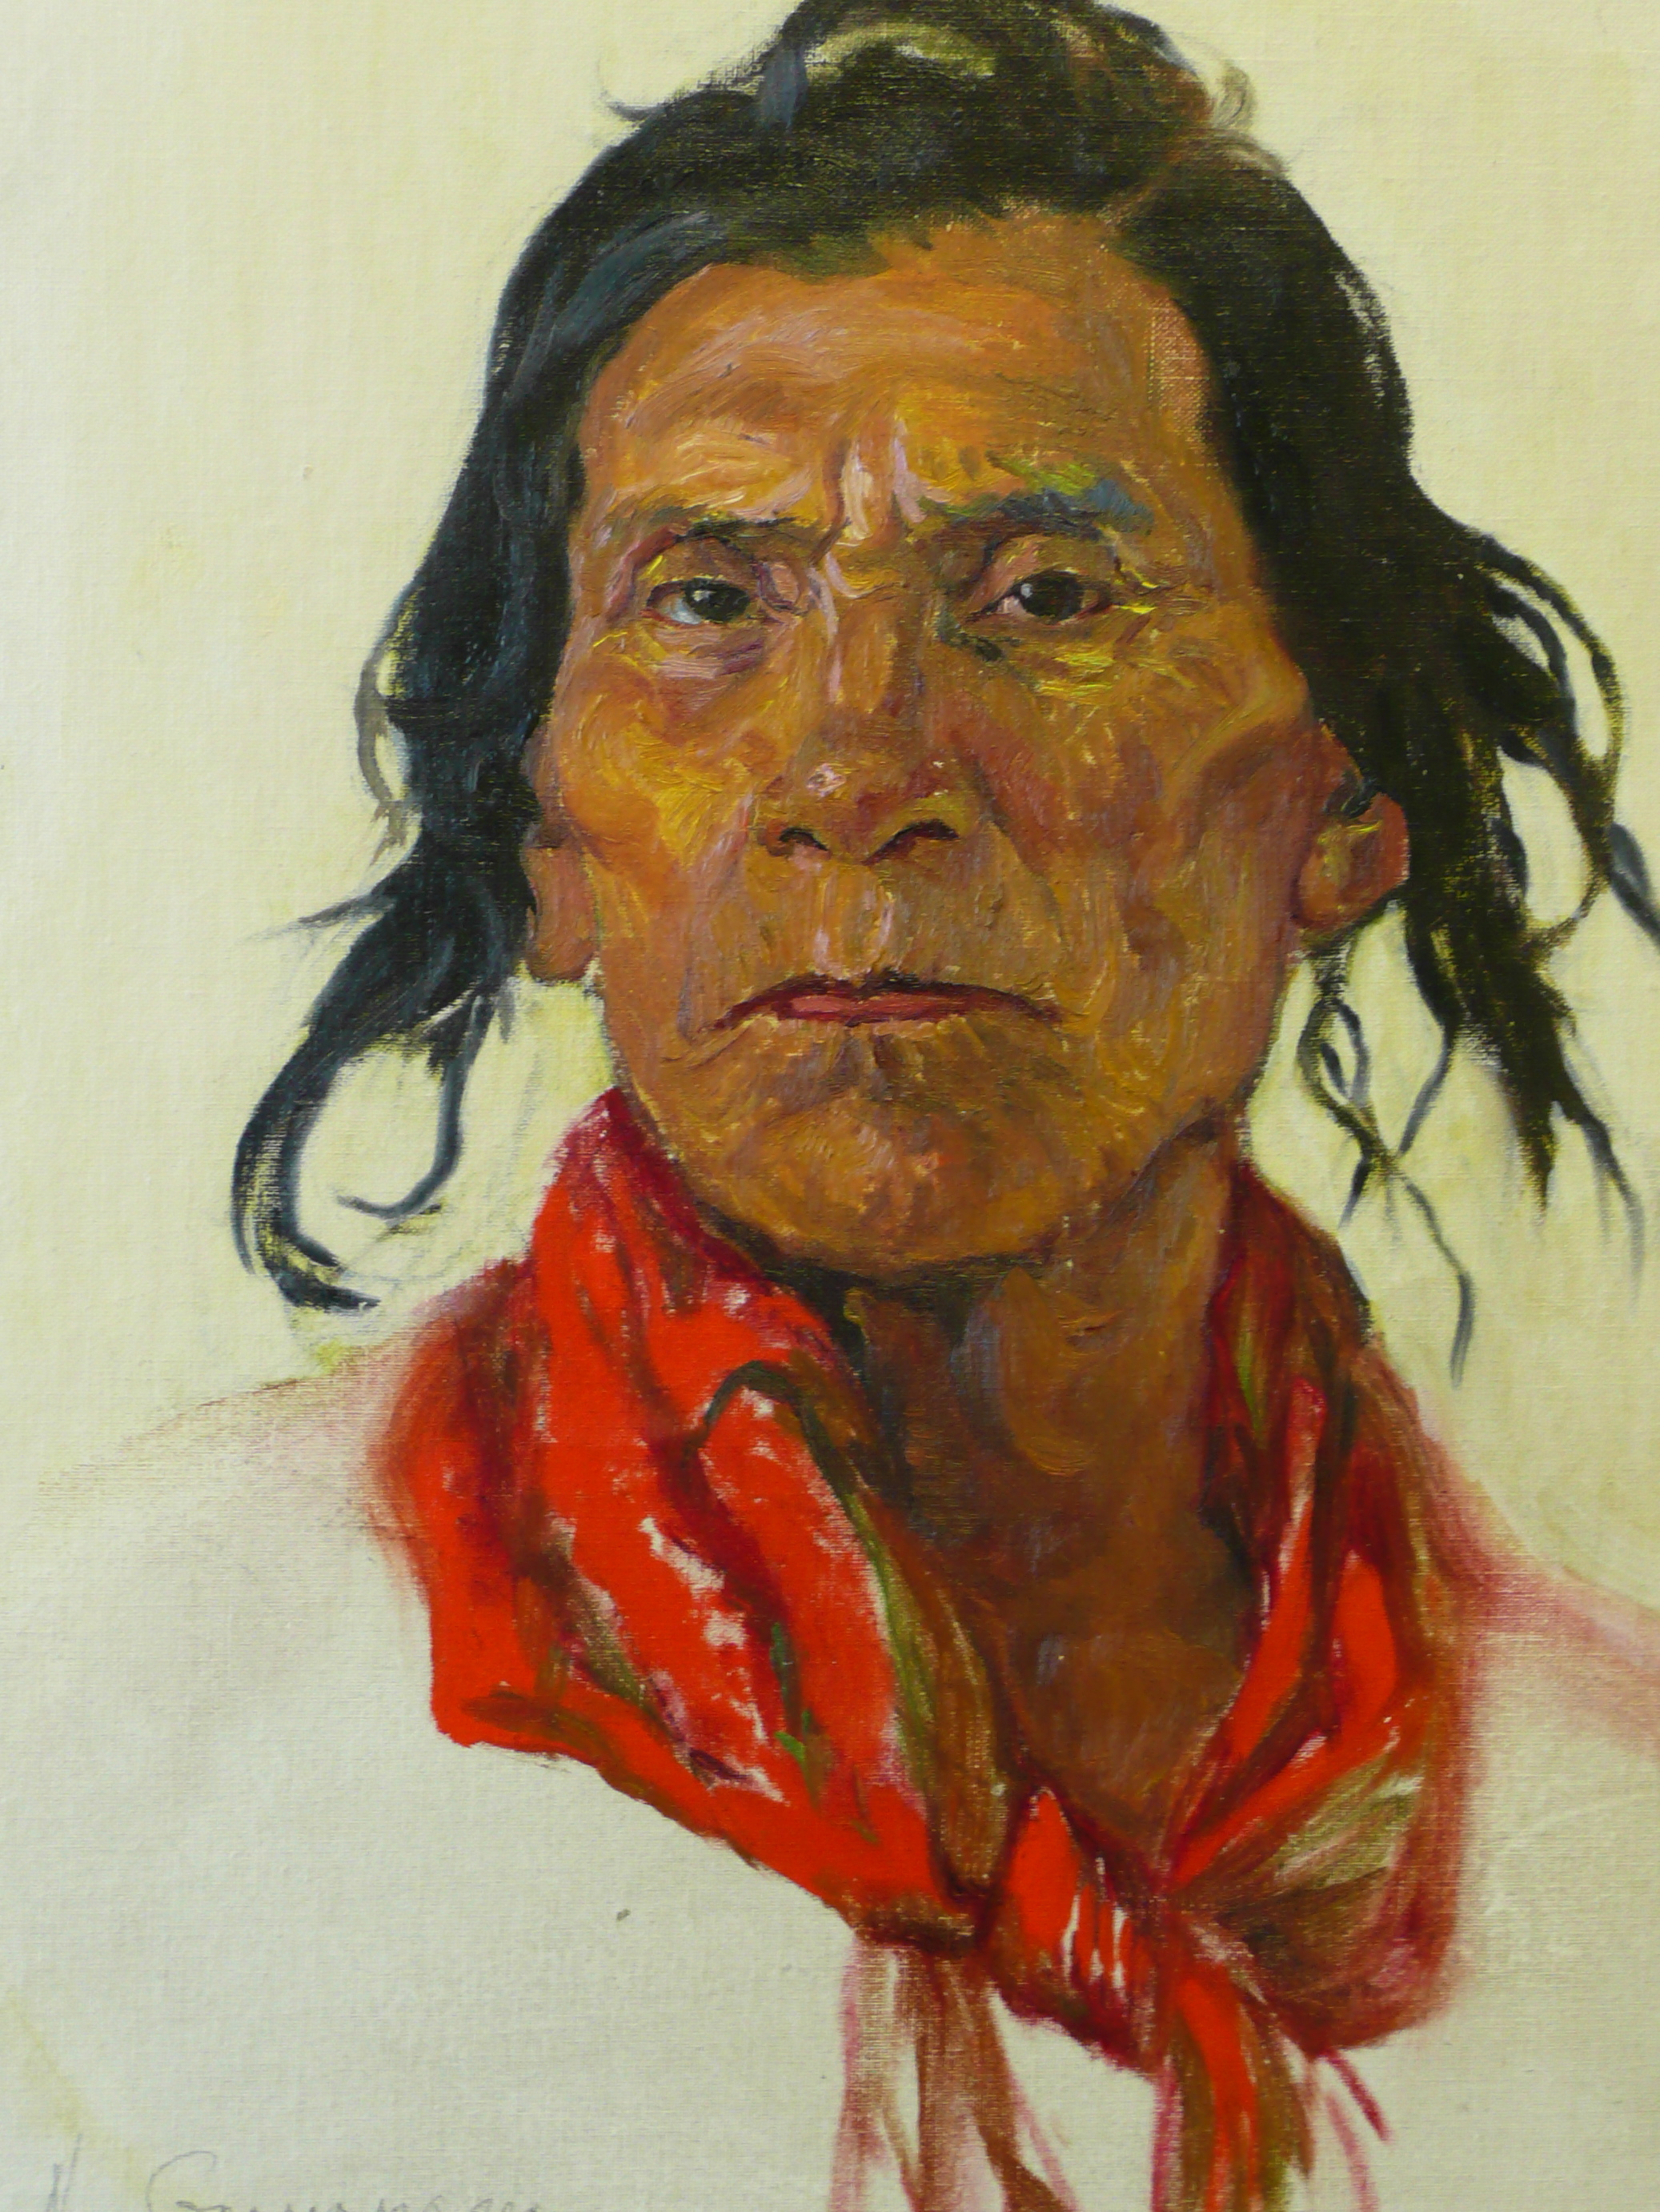 deGrandmaison, N. - Portrait of a Native Man with Red Scarf.jpg